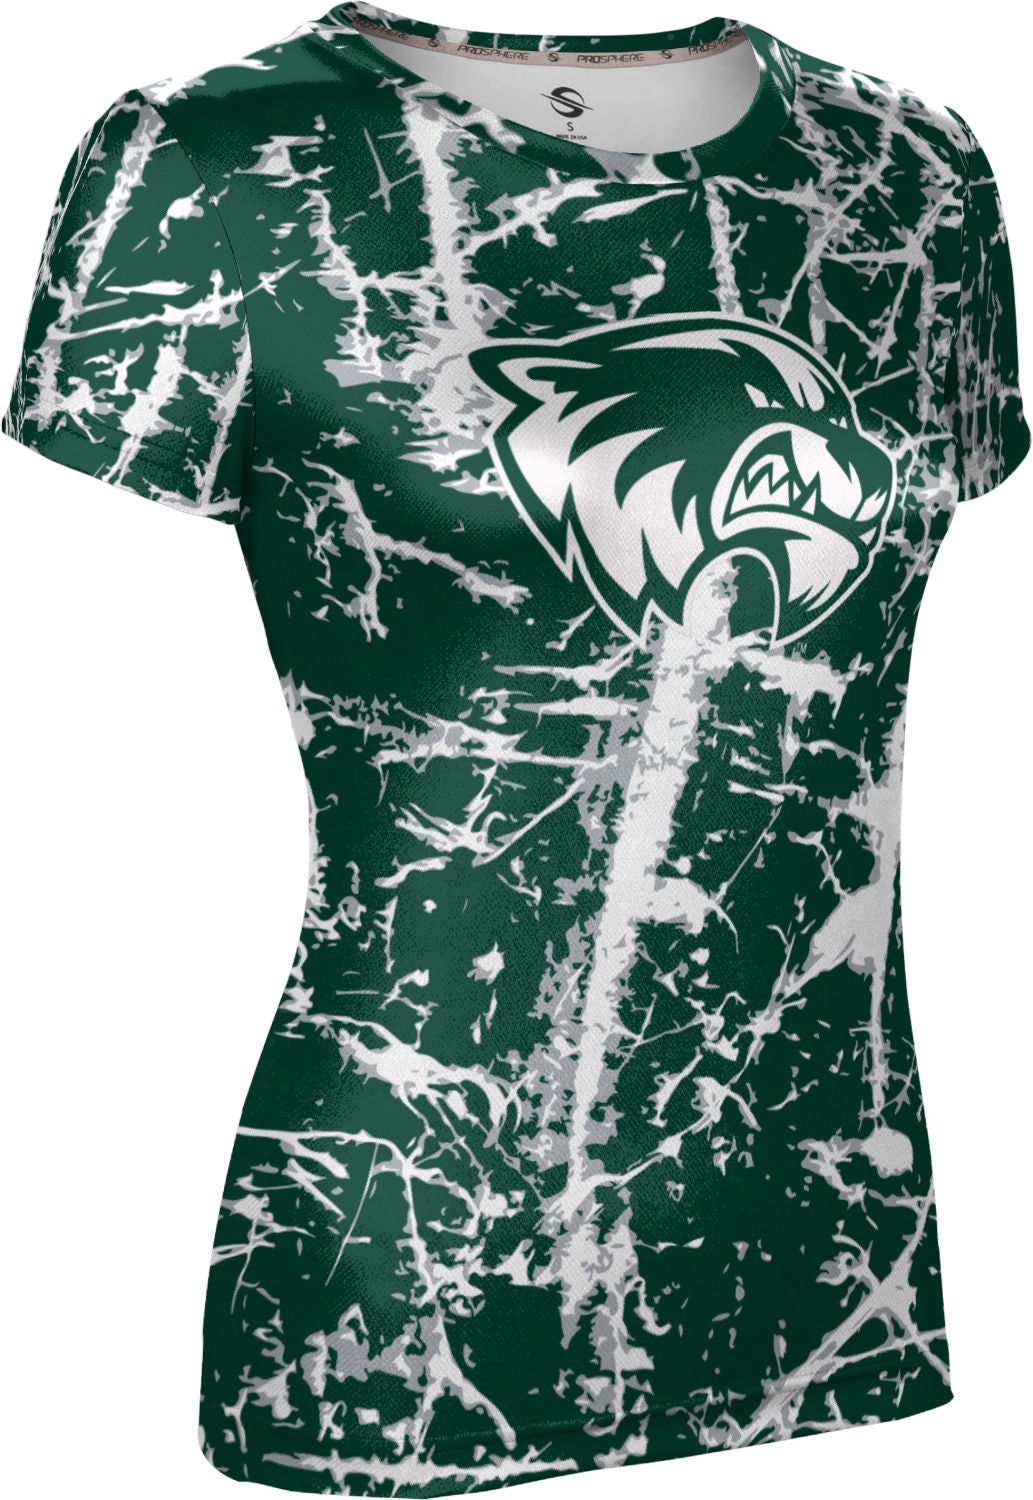 Utah Valley University: Girls' T-shirt - Distressed